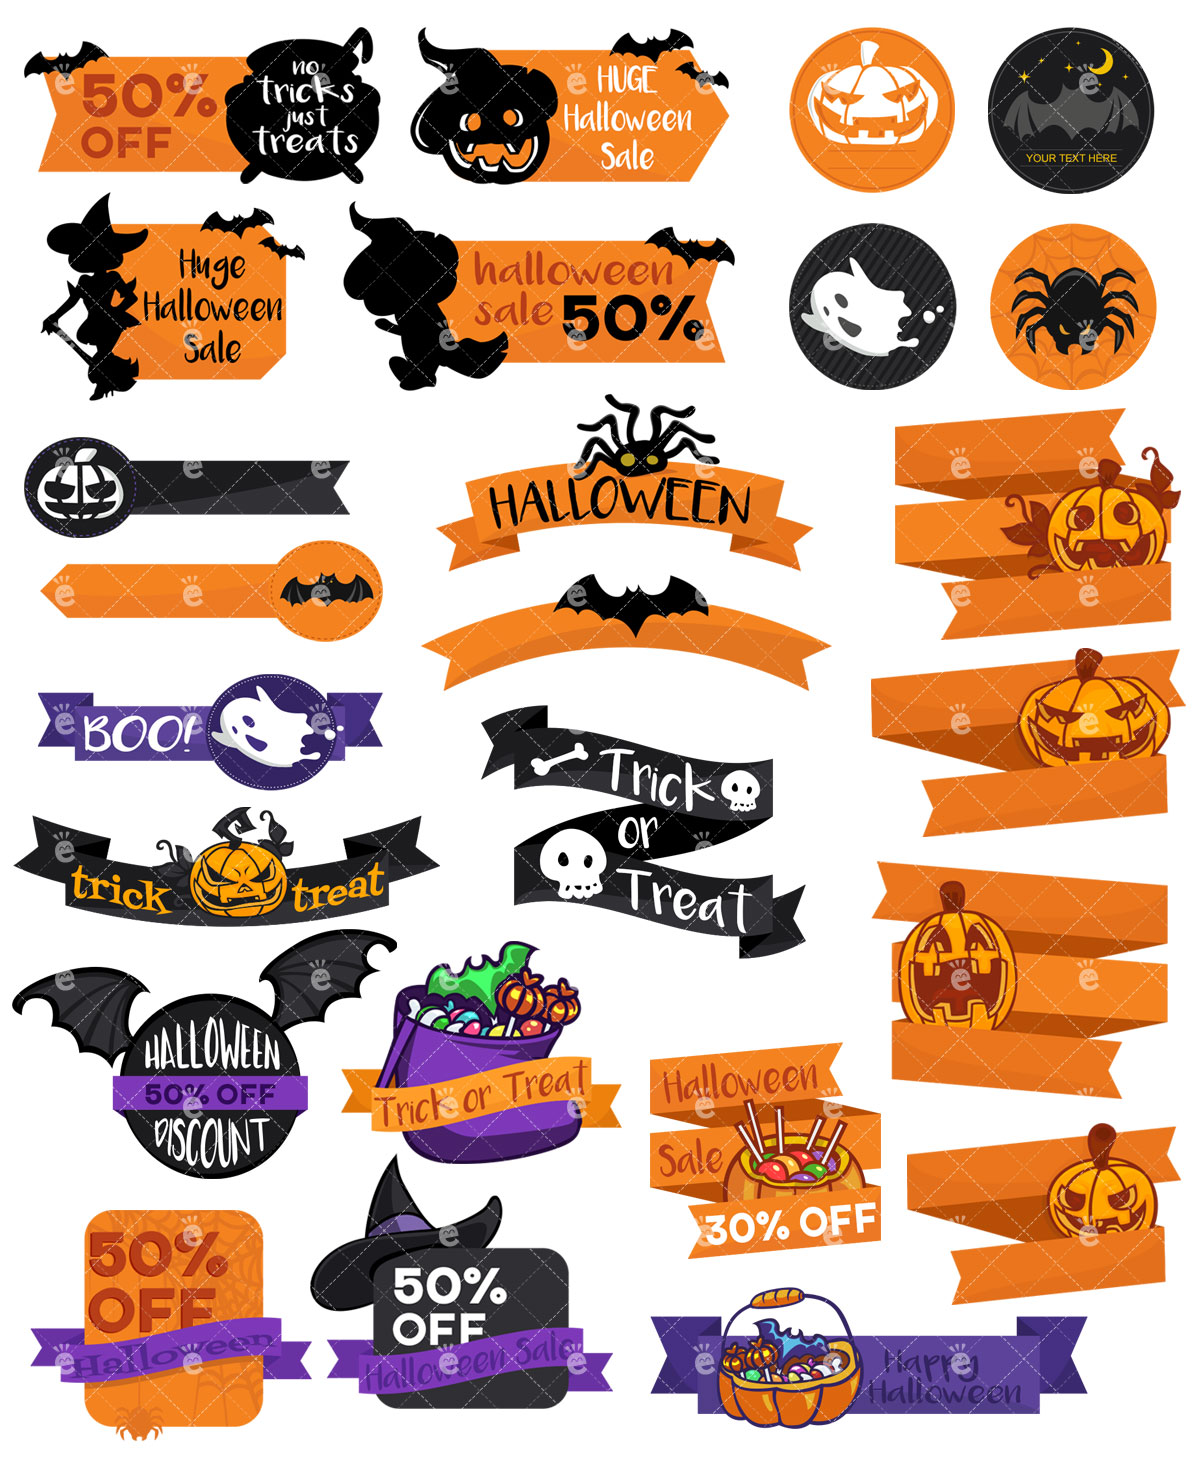 25 Halloween PSD Design Elements